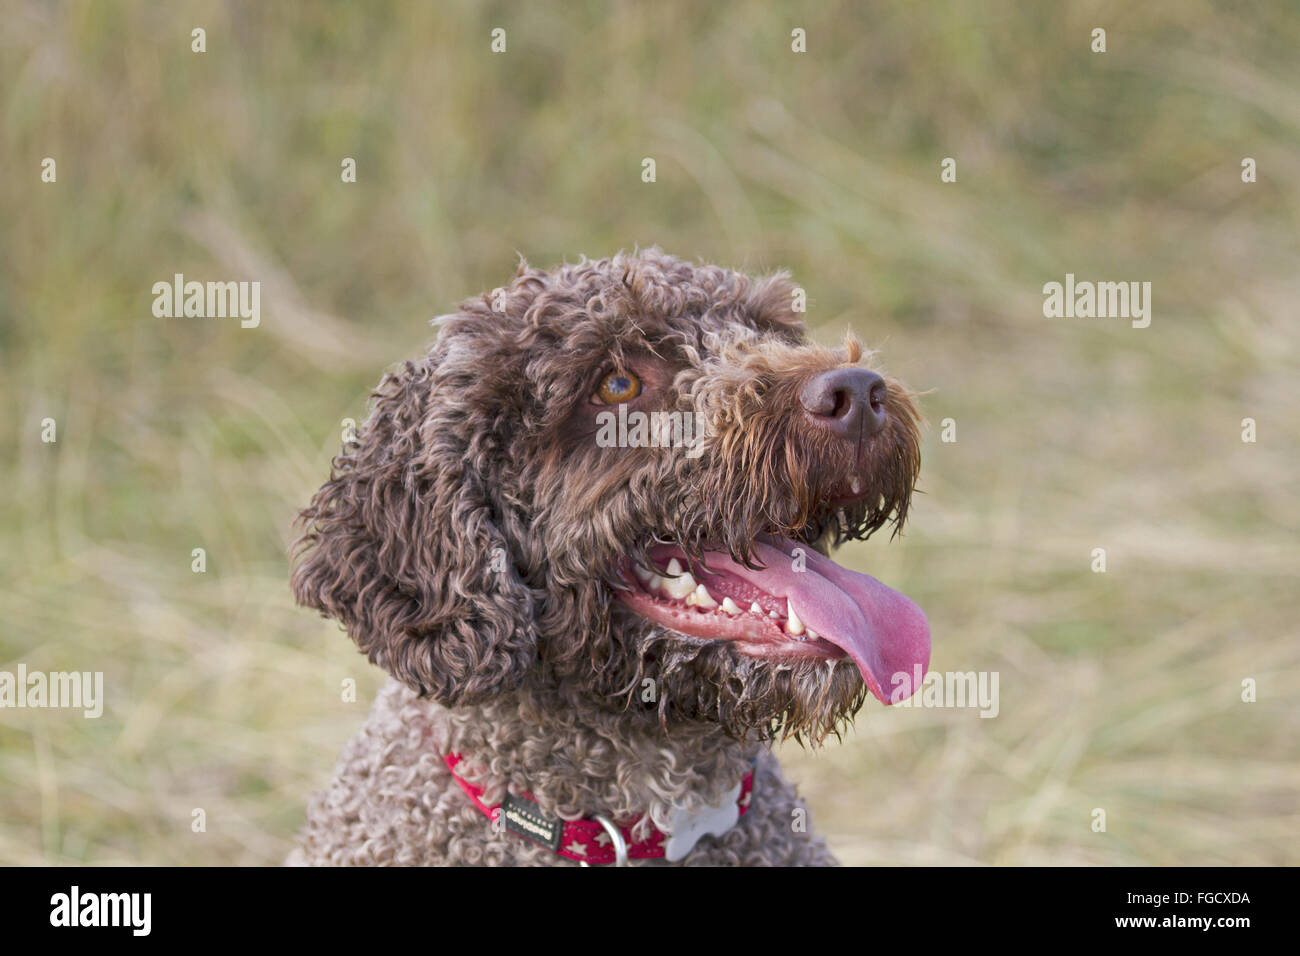 Domestic Dog, Perro de Agua Espanol, adult, close-up of head, panting, Norfolk, England, October - Stock Image